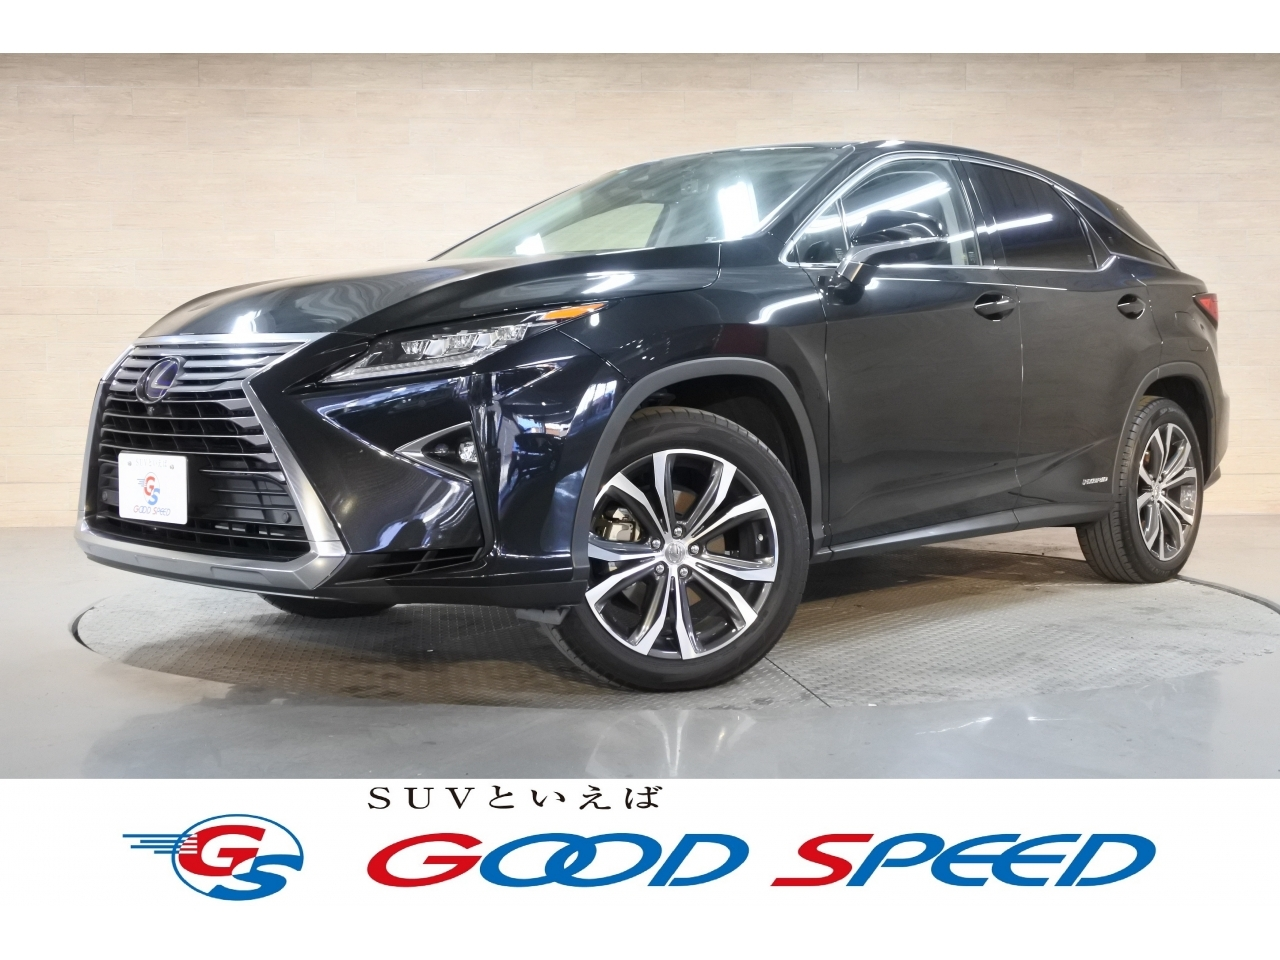 Buy used Lexus at Japanese auctions